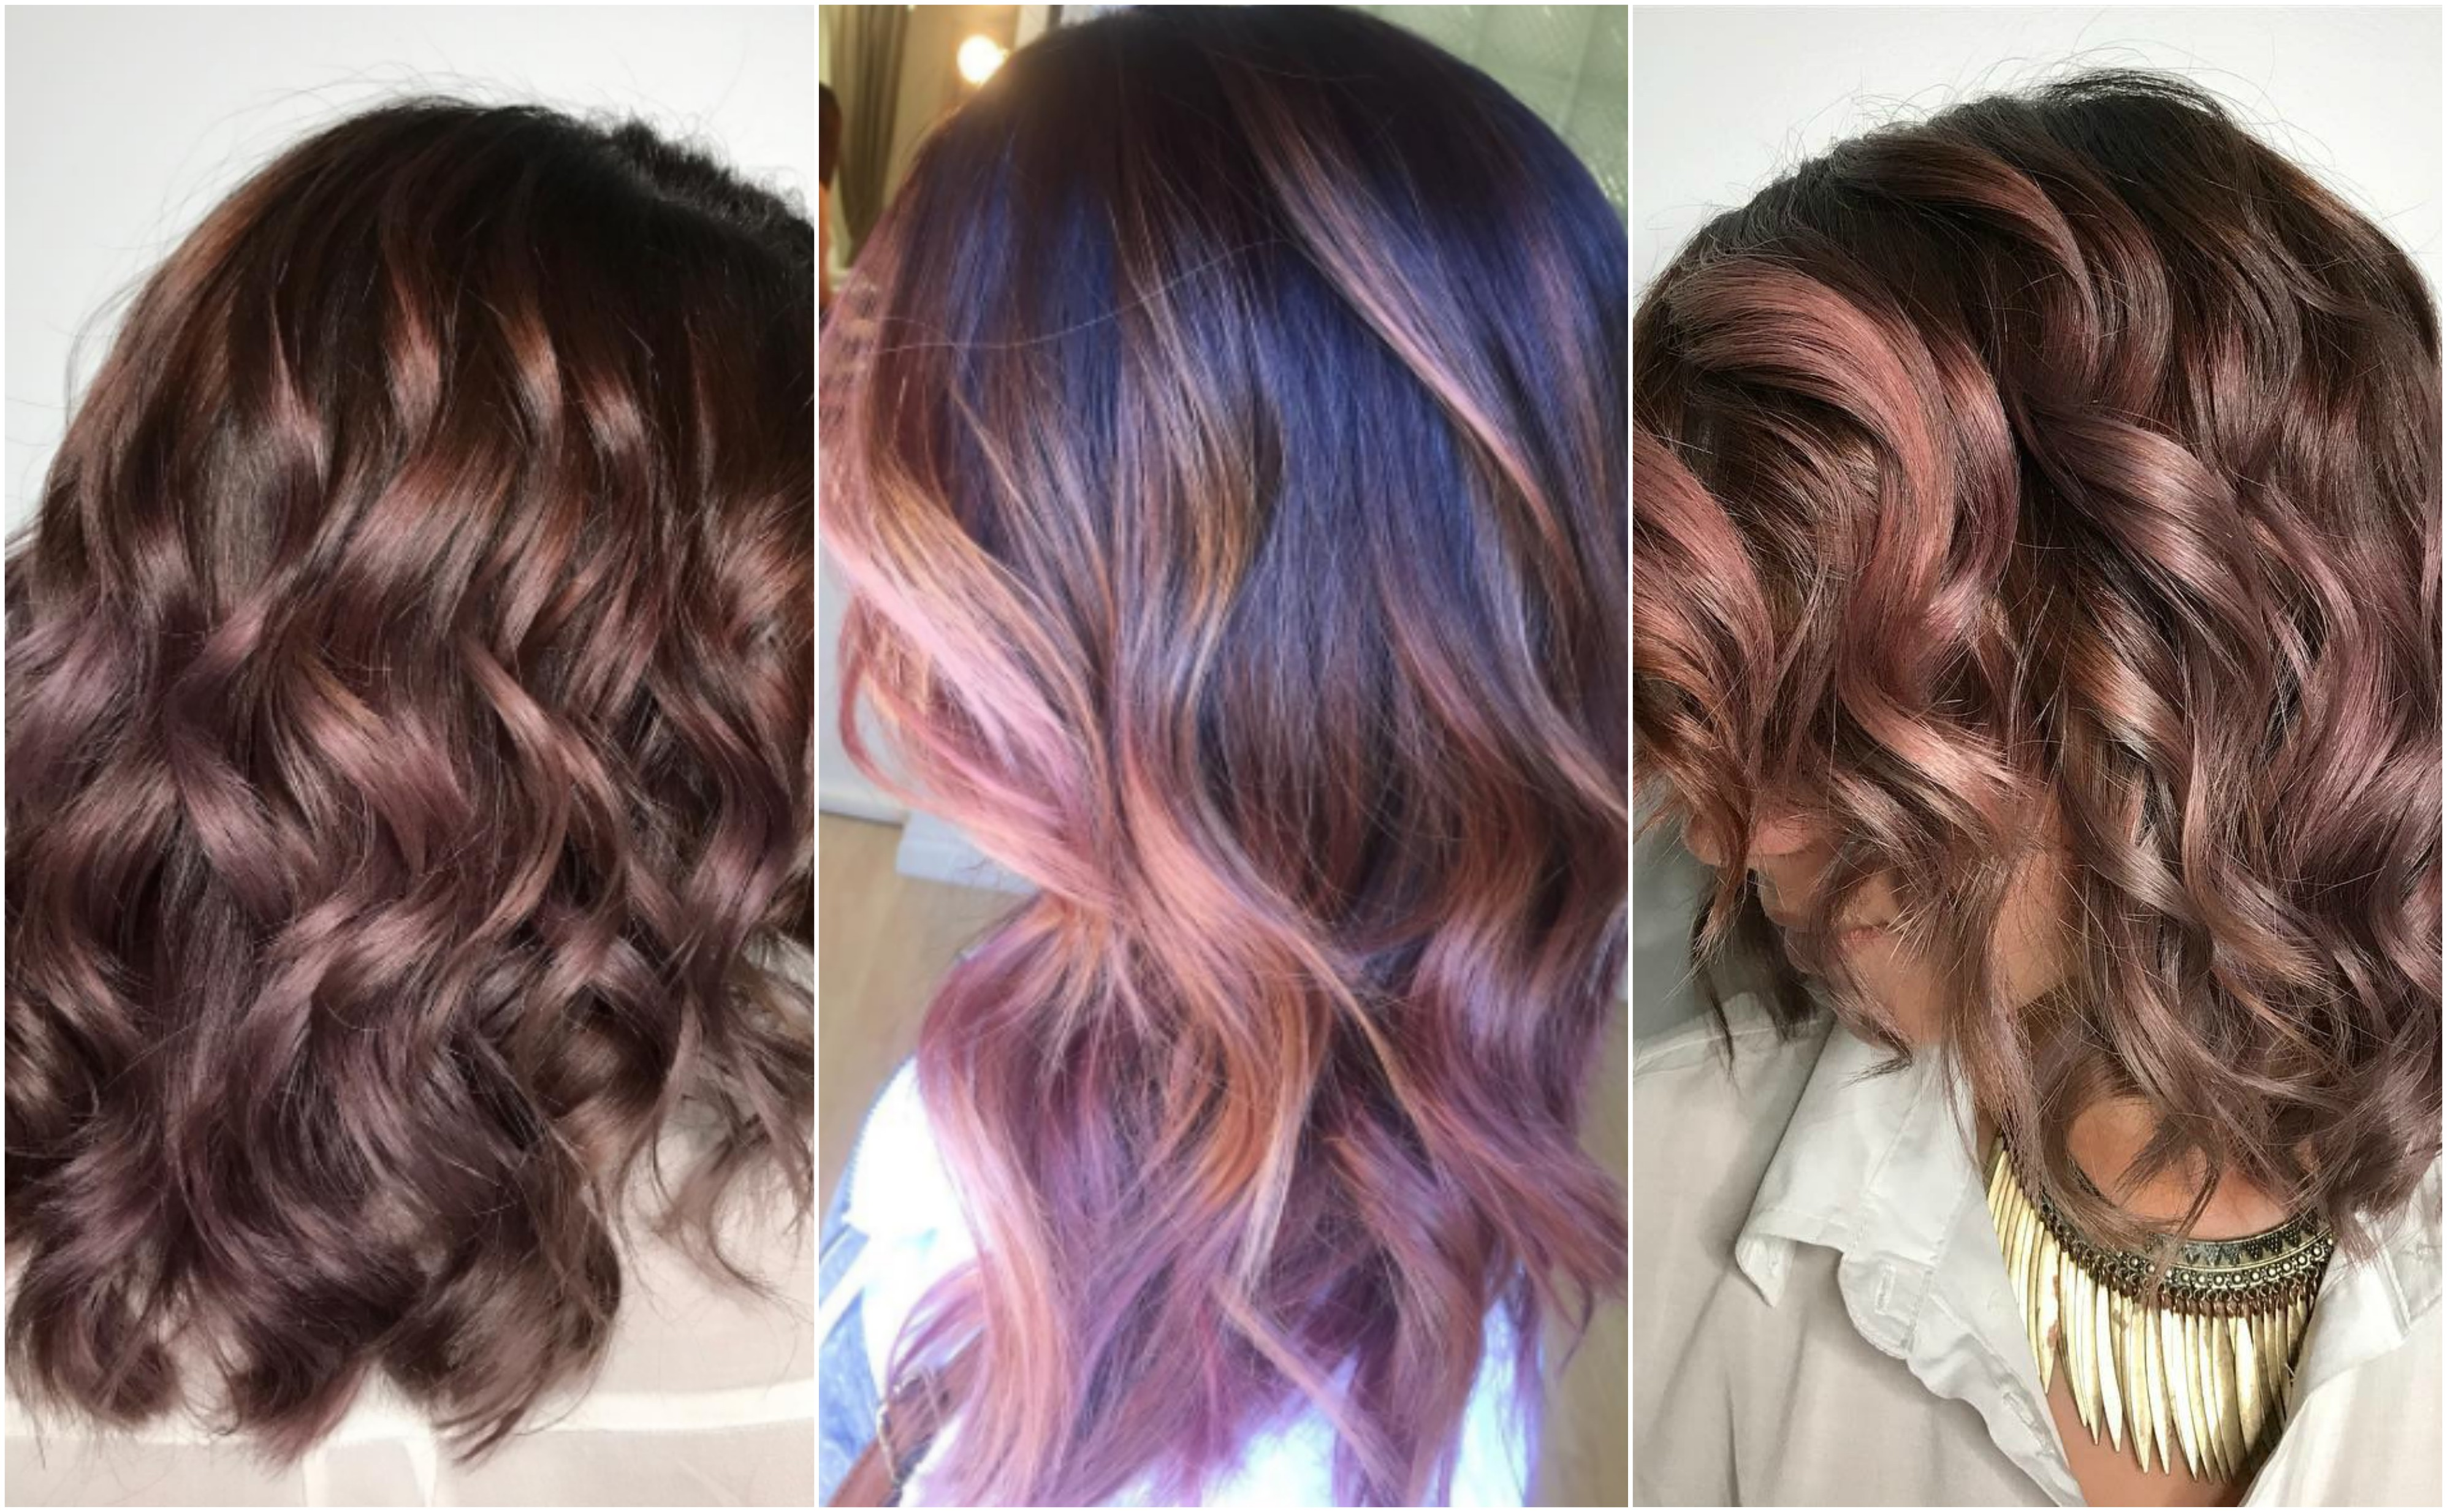 The latest (and delicious) chocolate-mauve hair trend is life